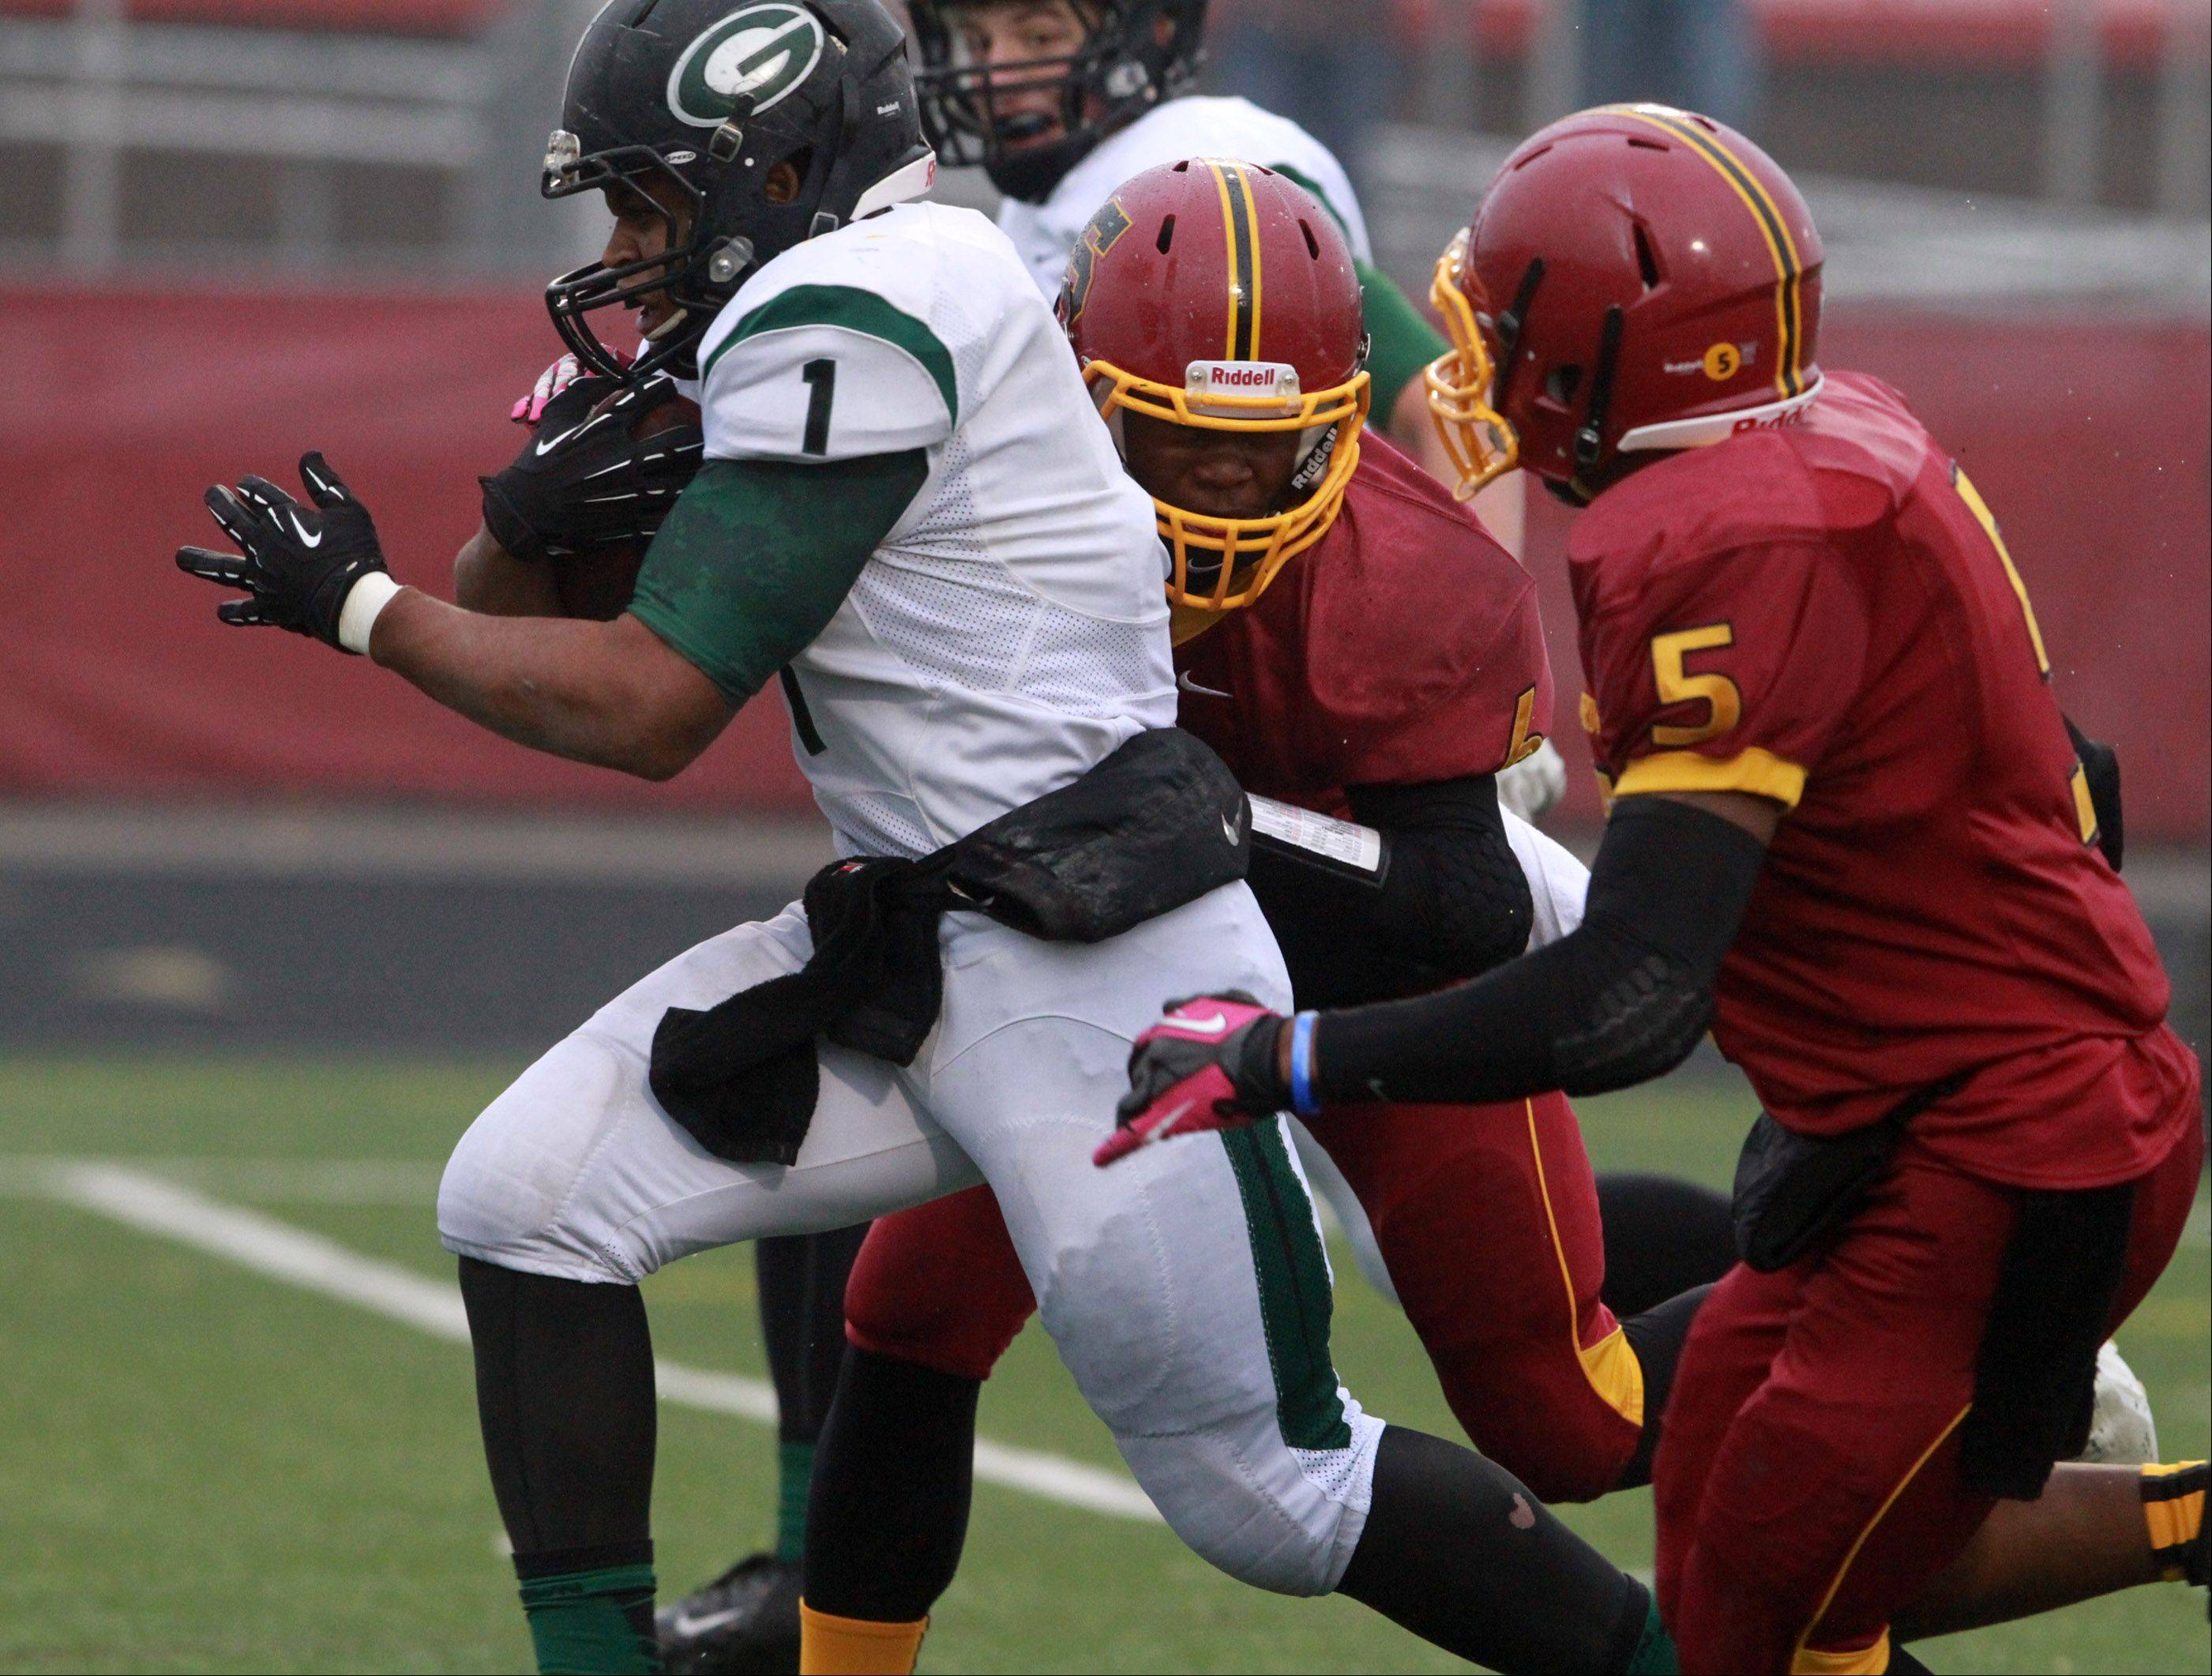 Schaumburg defender Rahsaan Green Jr. can't pull down Glenbard West running back Devonte Toney as he runs for a touch down in a quarterfinal playoff game on Saturday in Schaumburg.